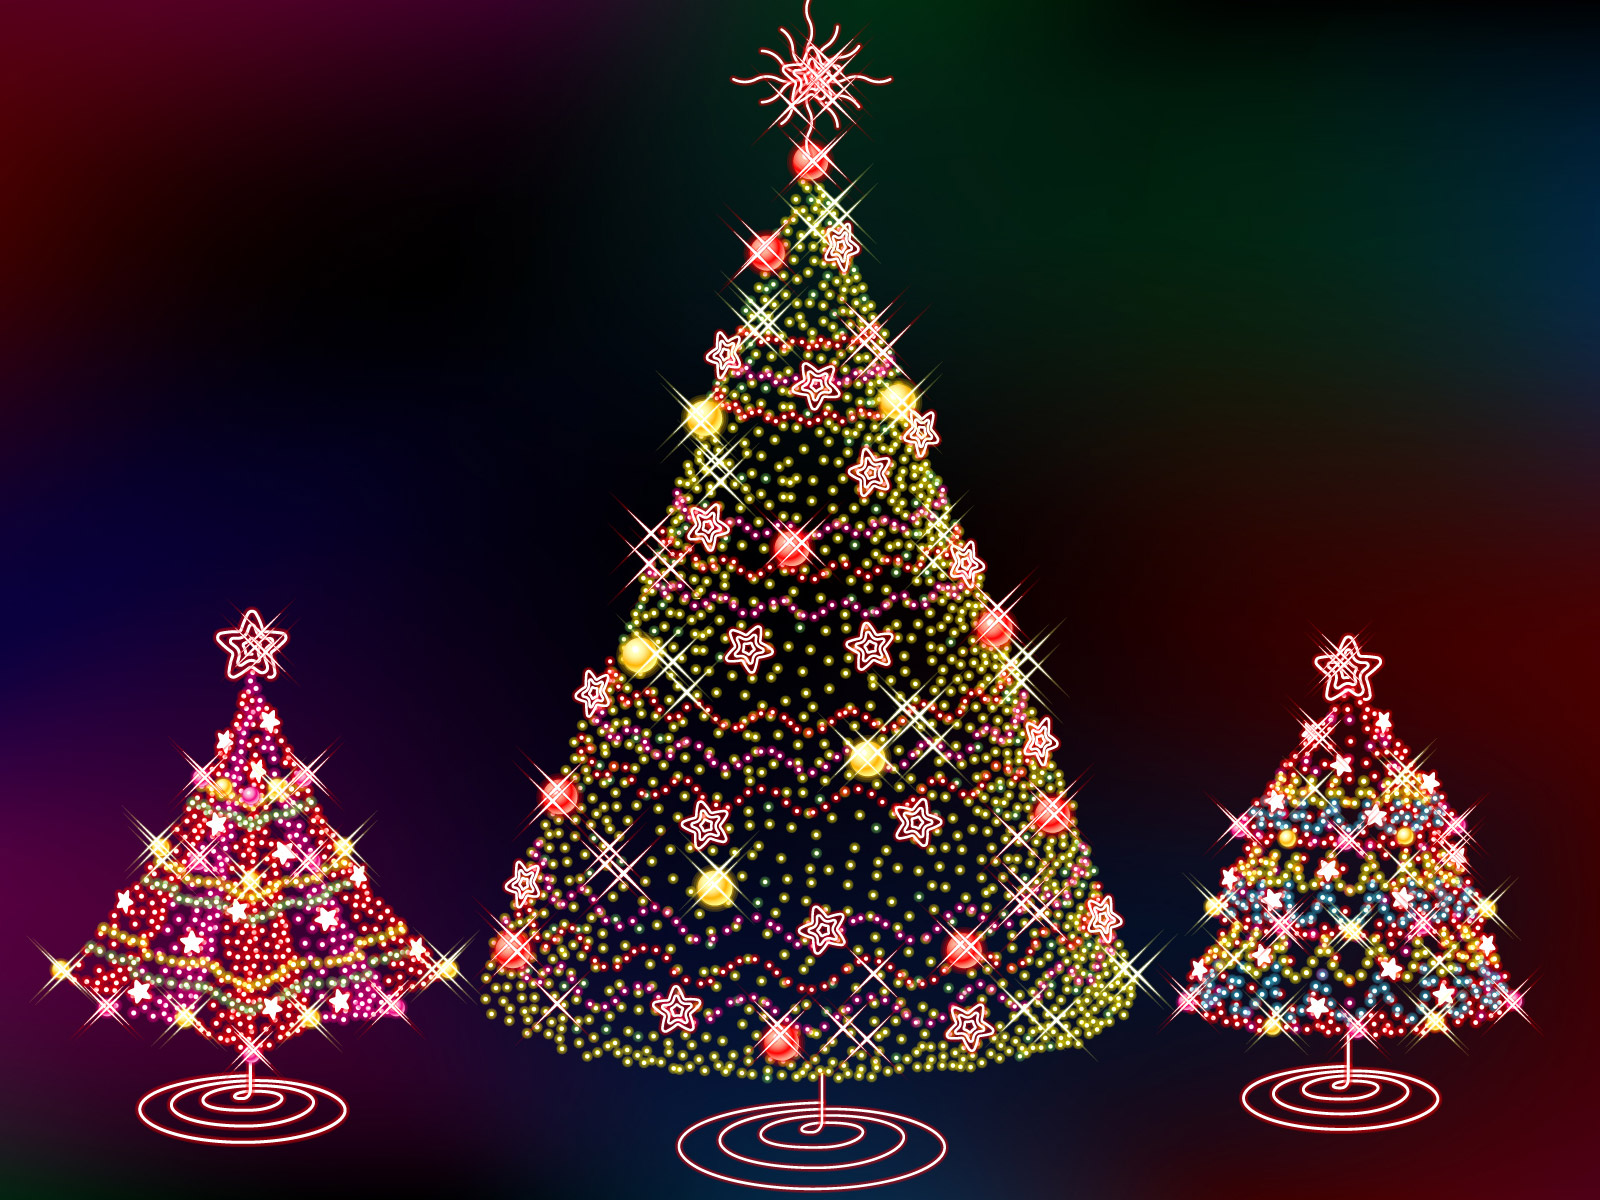 Christmas Tree WallpaperComputer Wallpaper Wallpaper Downloads 1600x1200